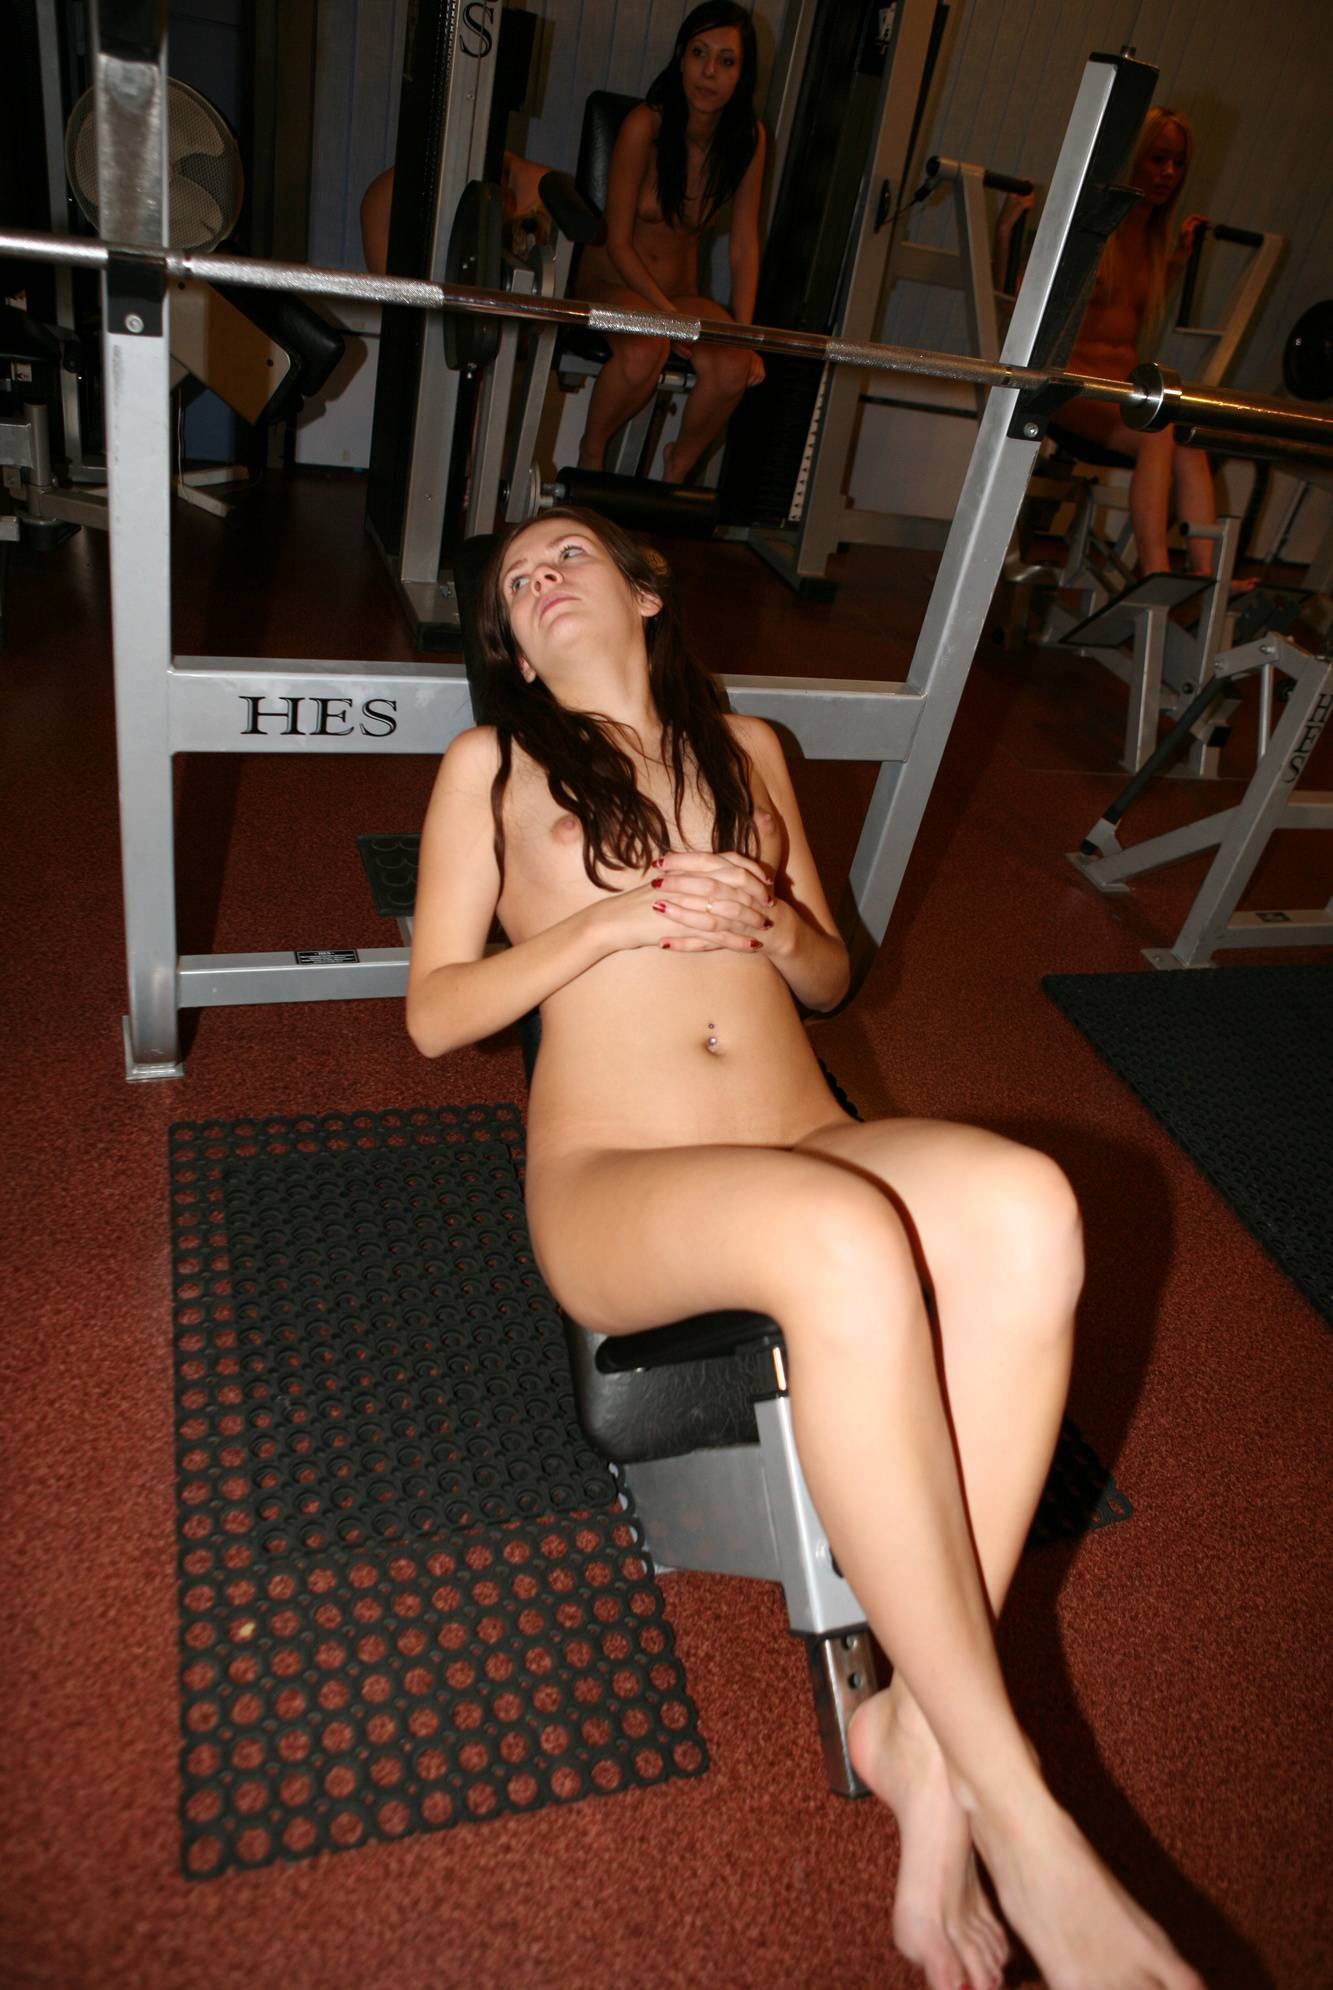 Gymnasts On The Bench - 2